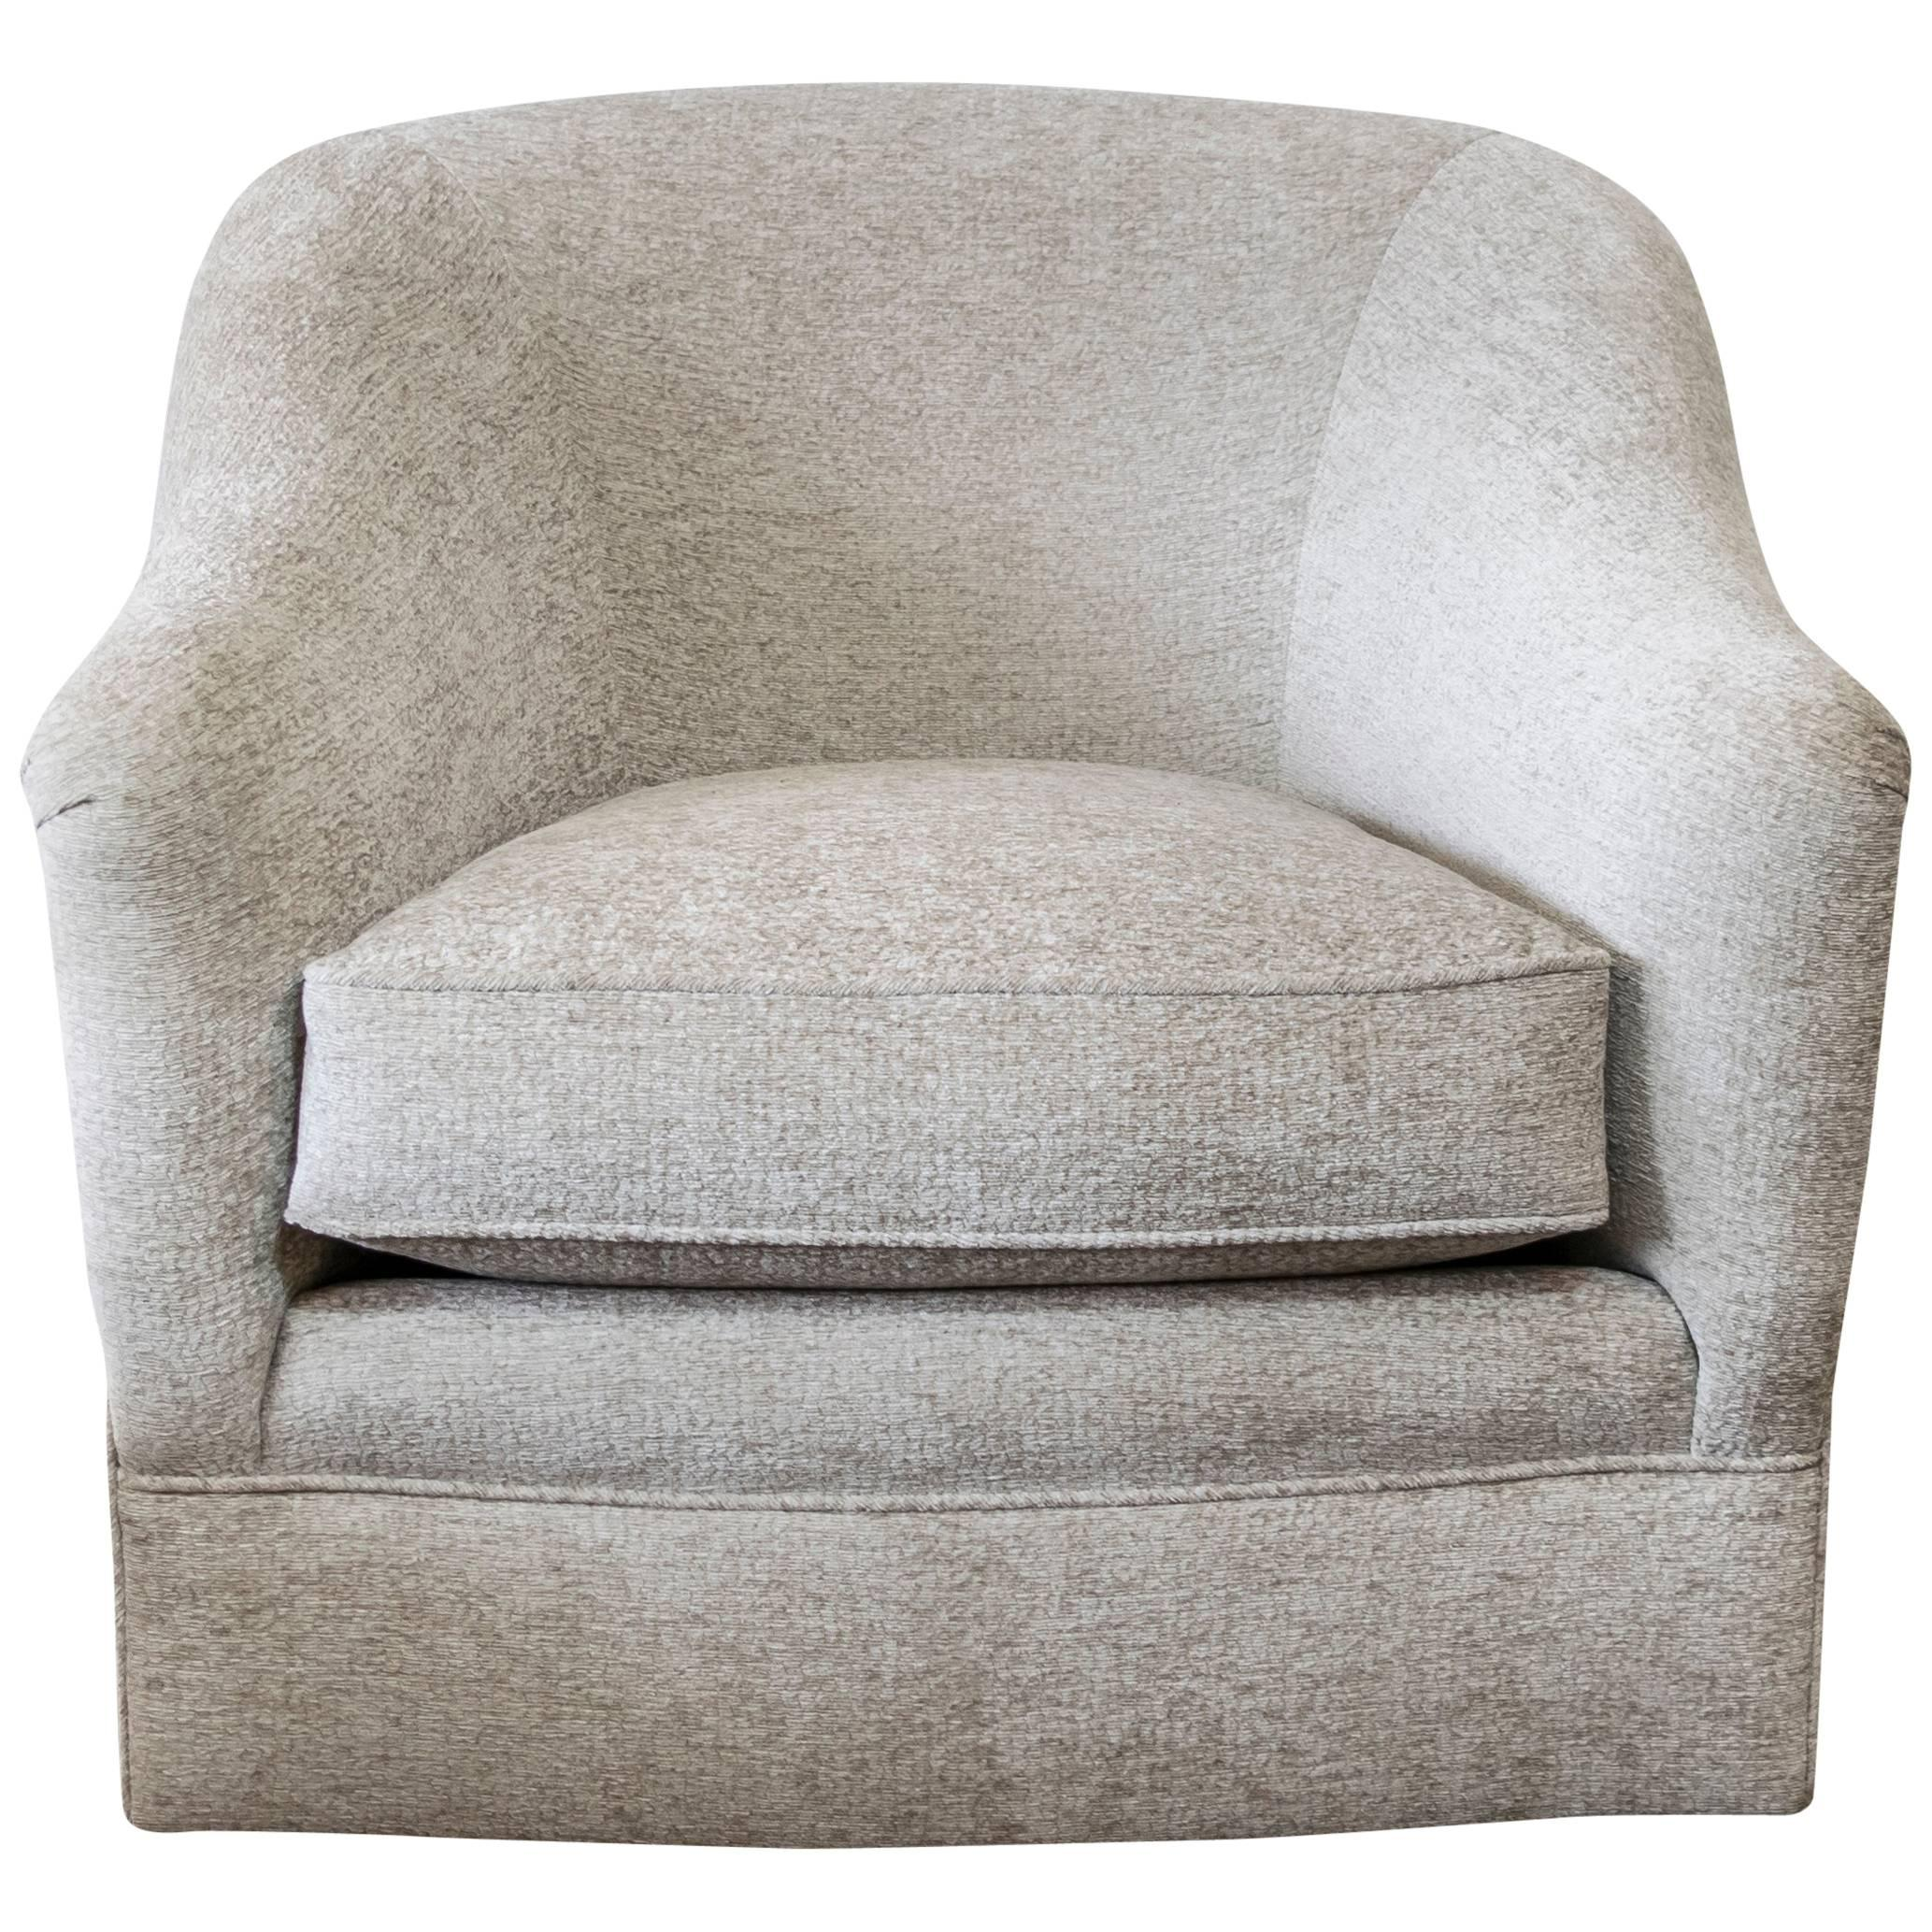 Donghia Swivel Chair Upholstered In Luxurious Cream Chenille